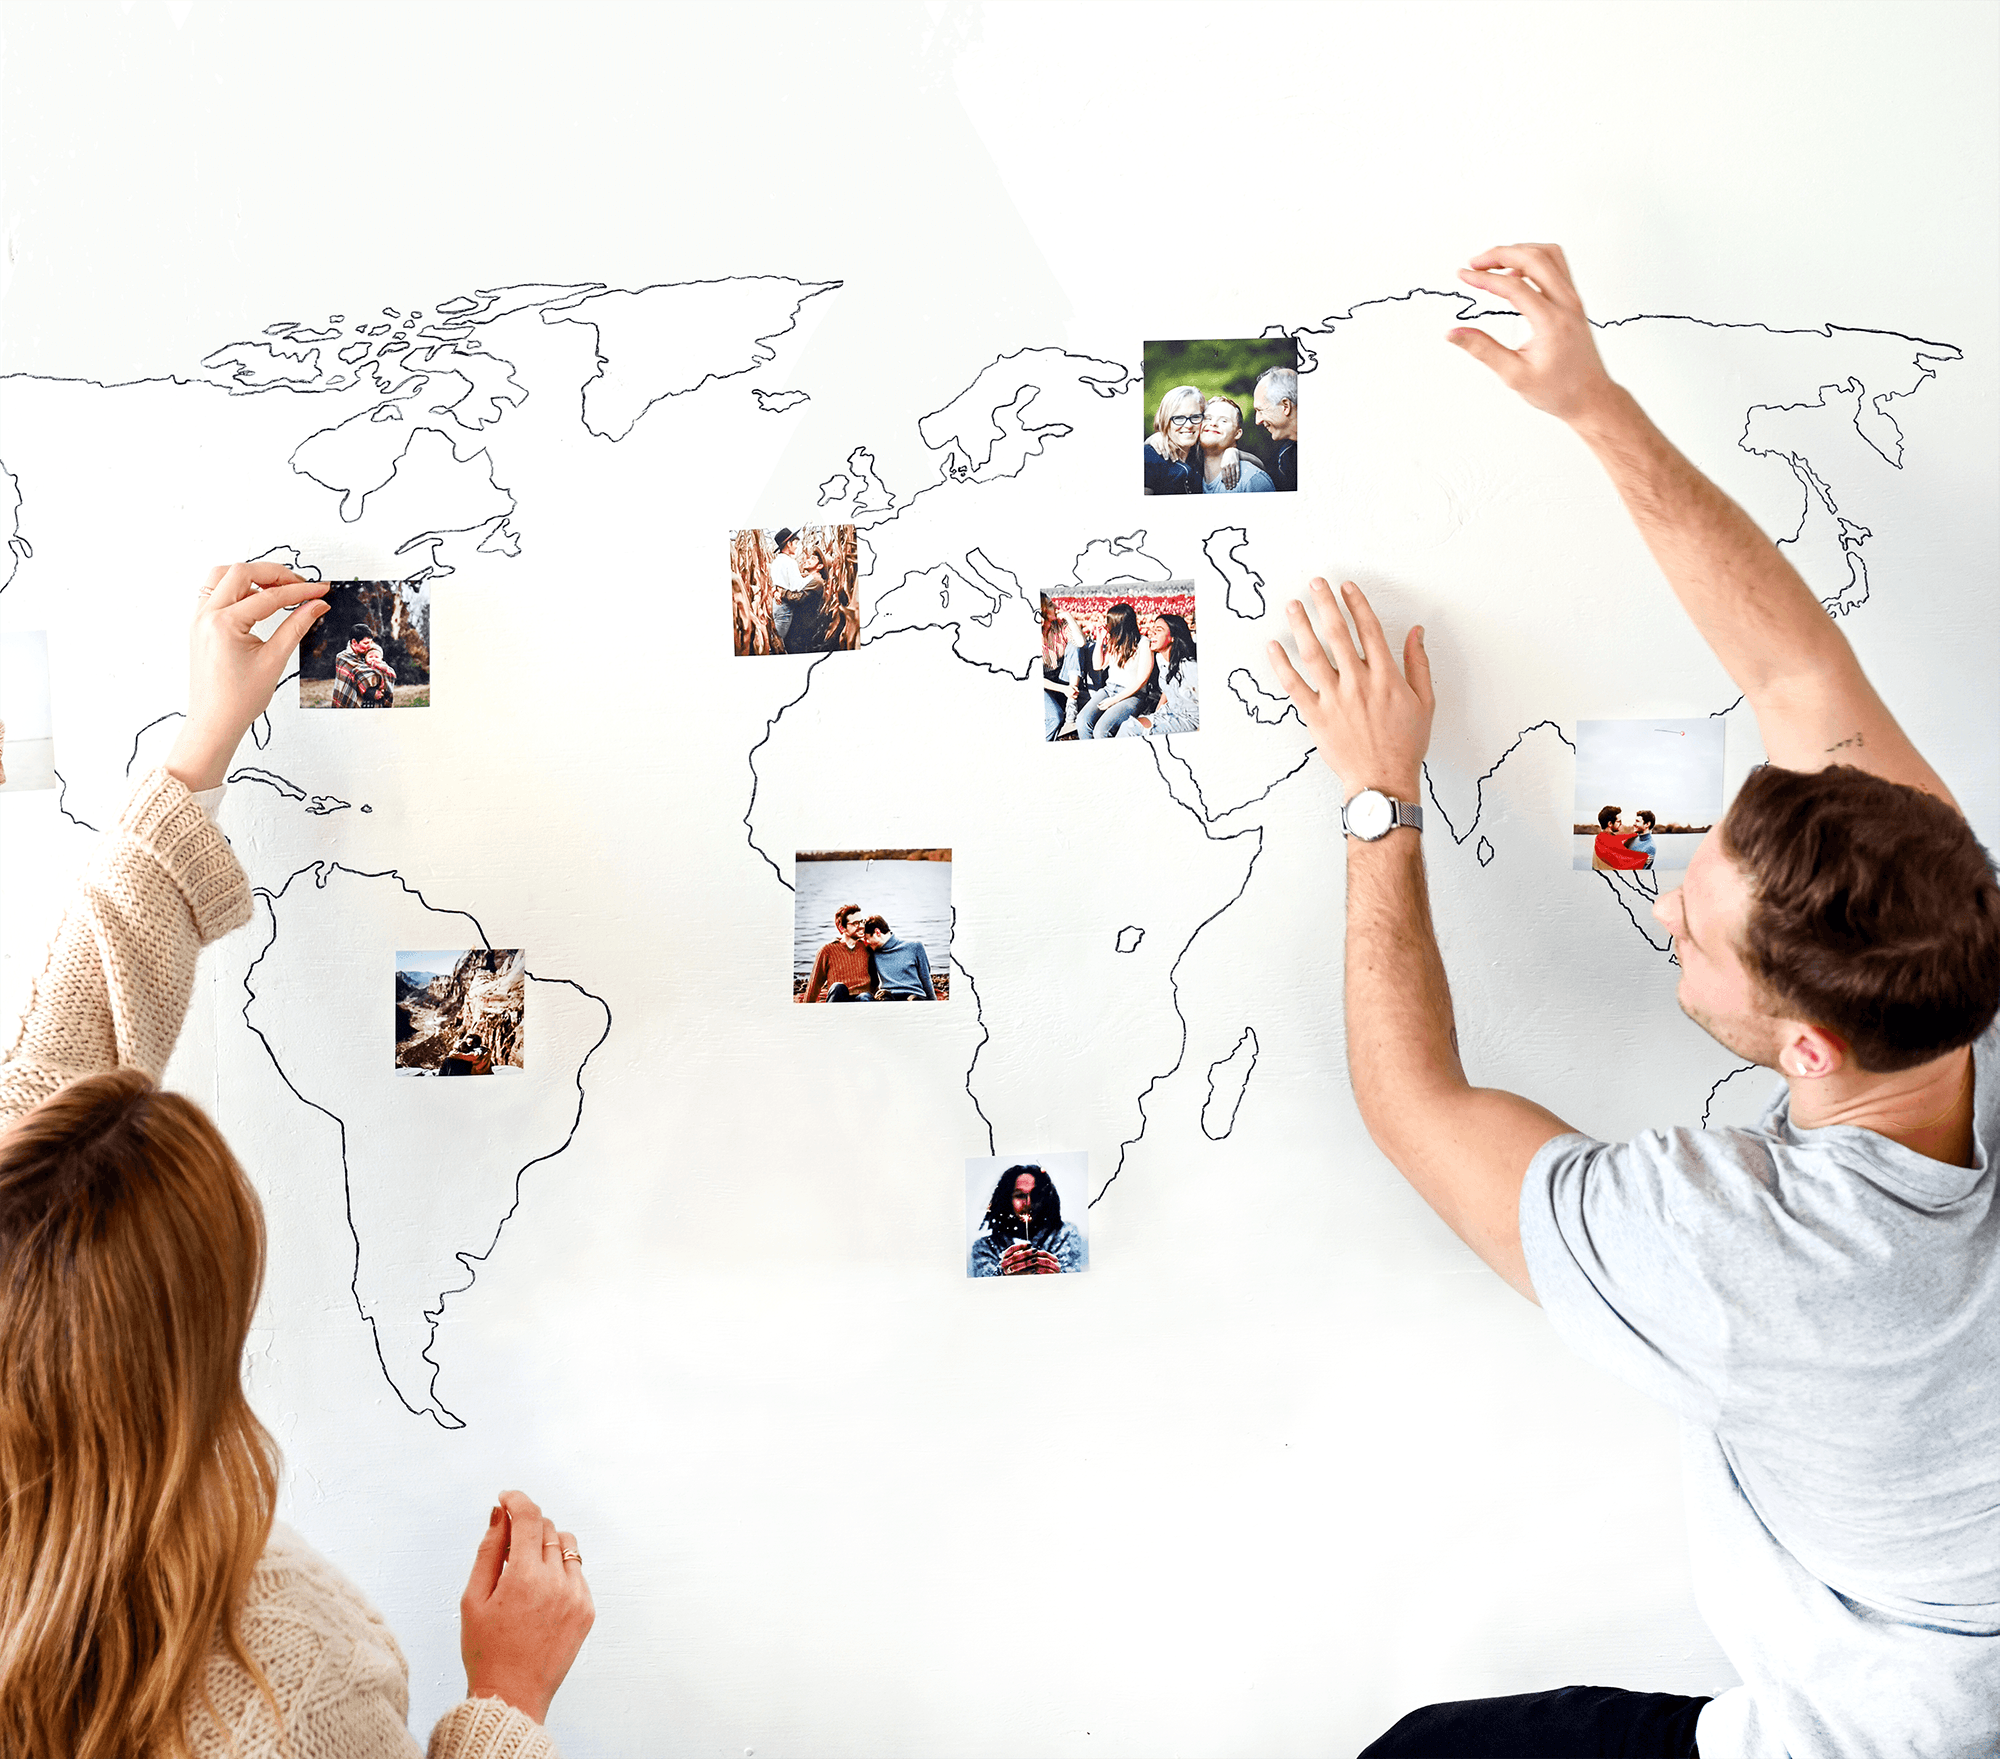 Print your favorite moments in square formats